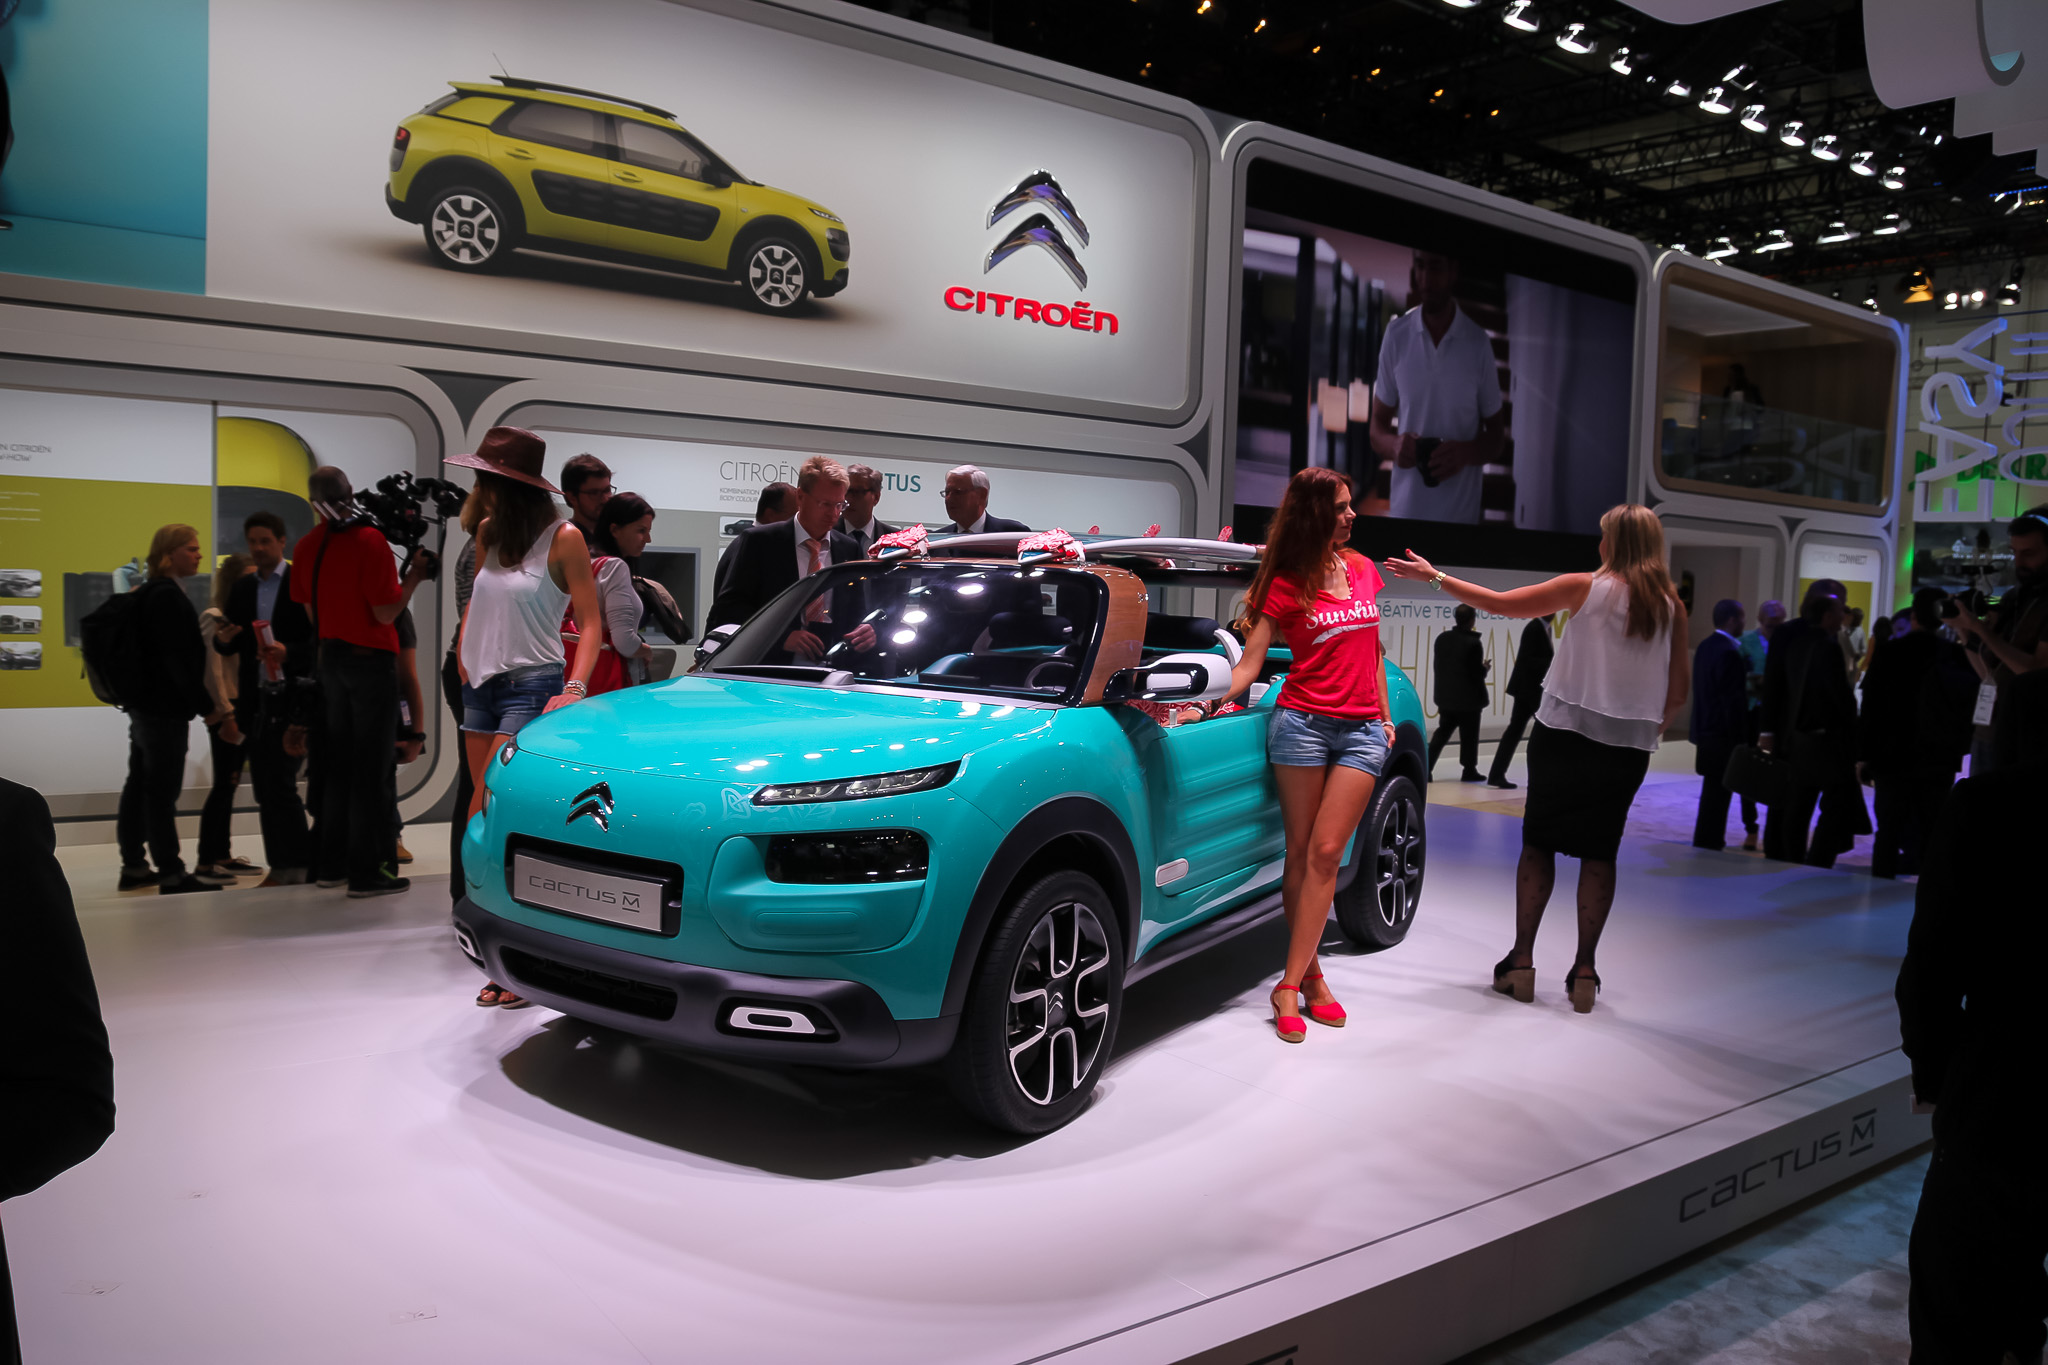 frankfurt iaa 2015 citroen cactus m concept 4. Black Bedroom Furniture Sets. Home Design Ideas